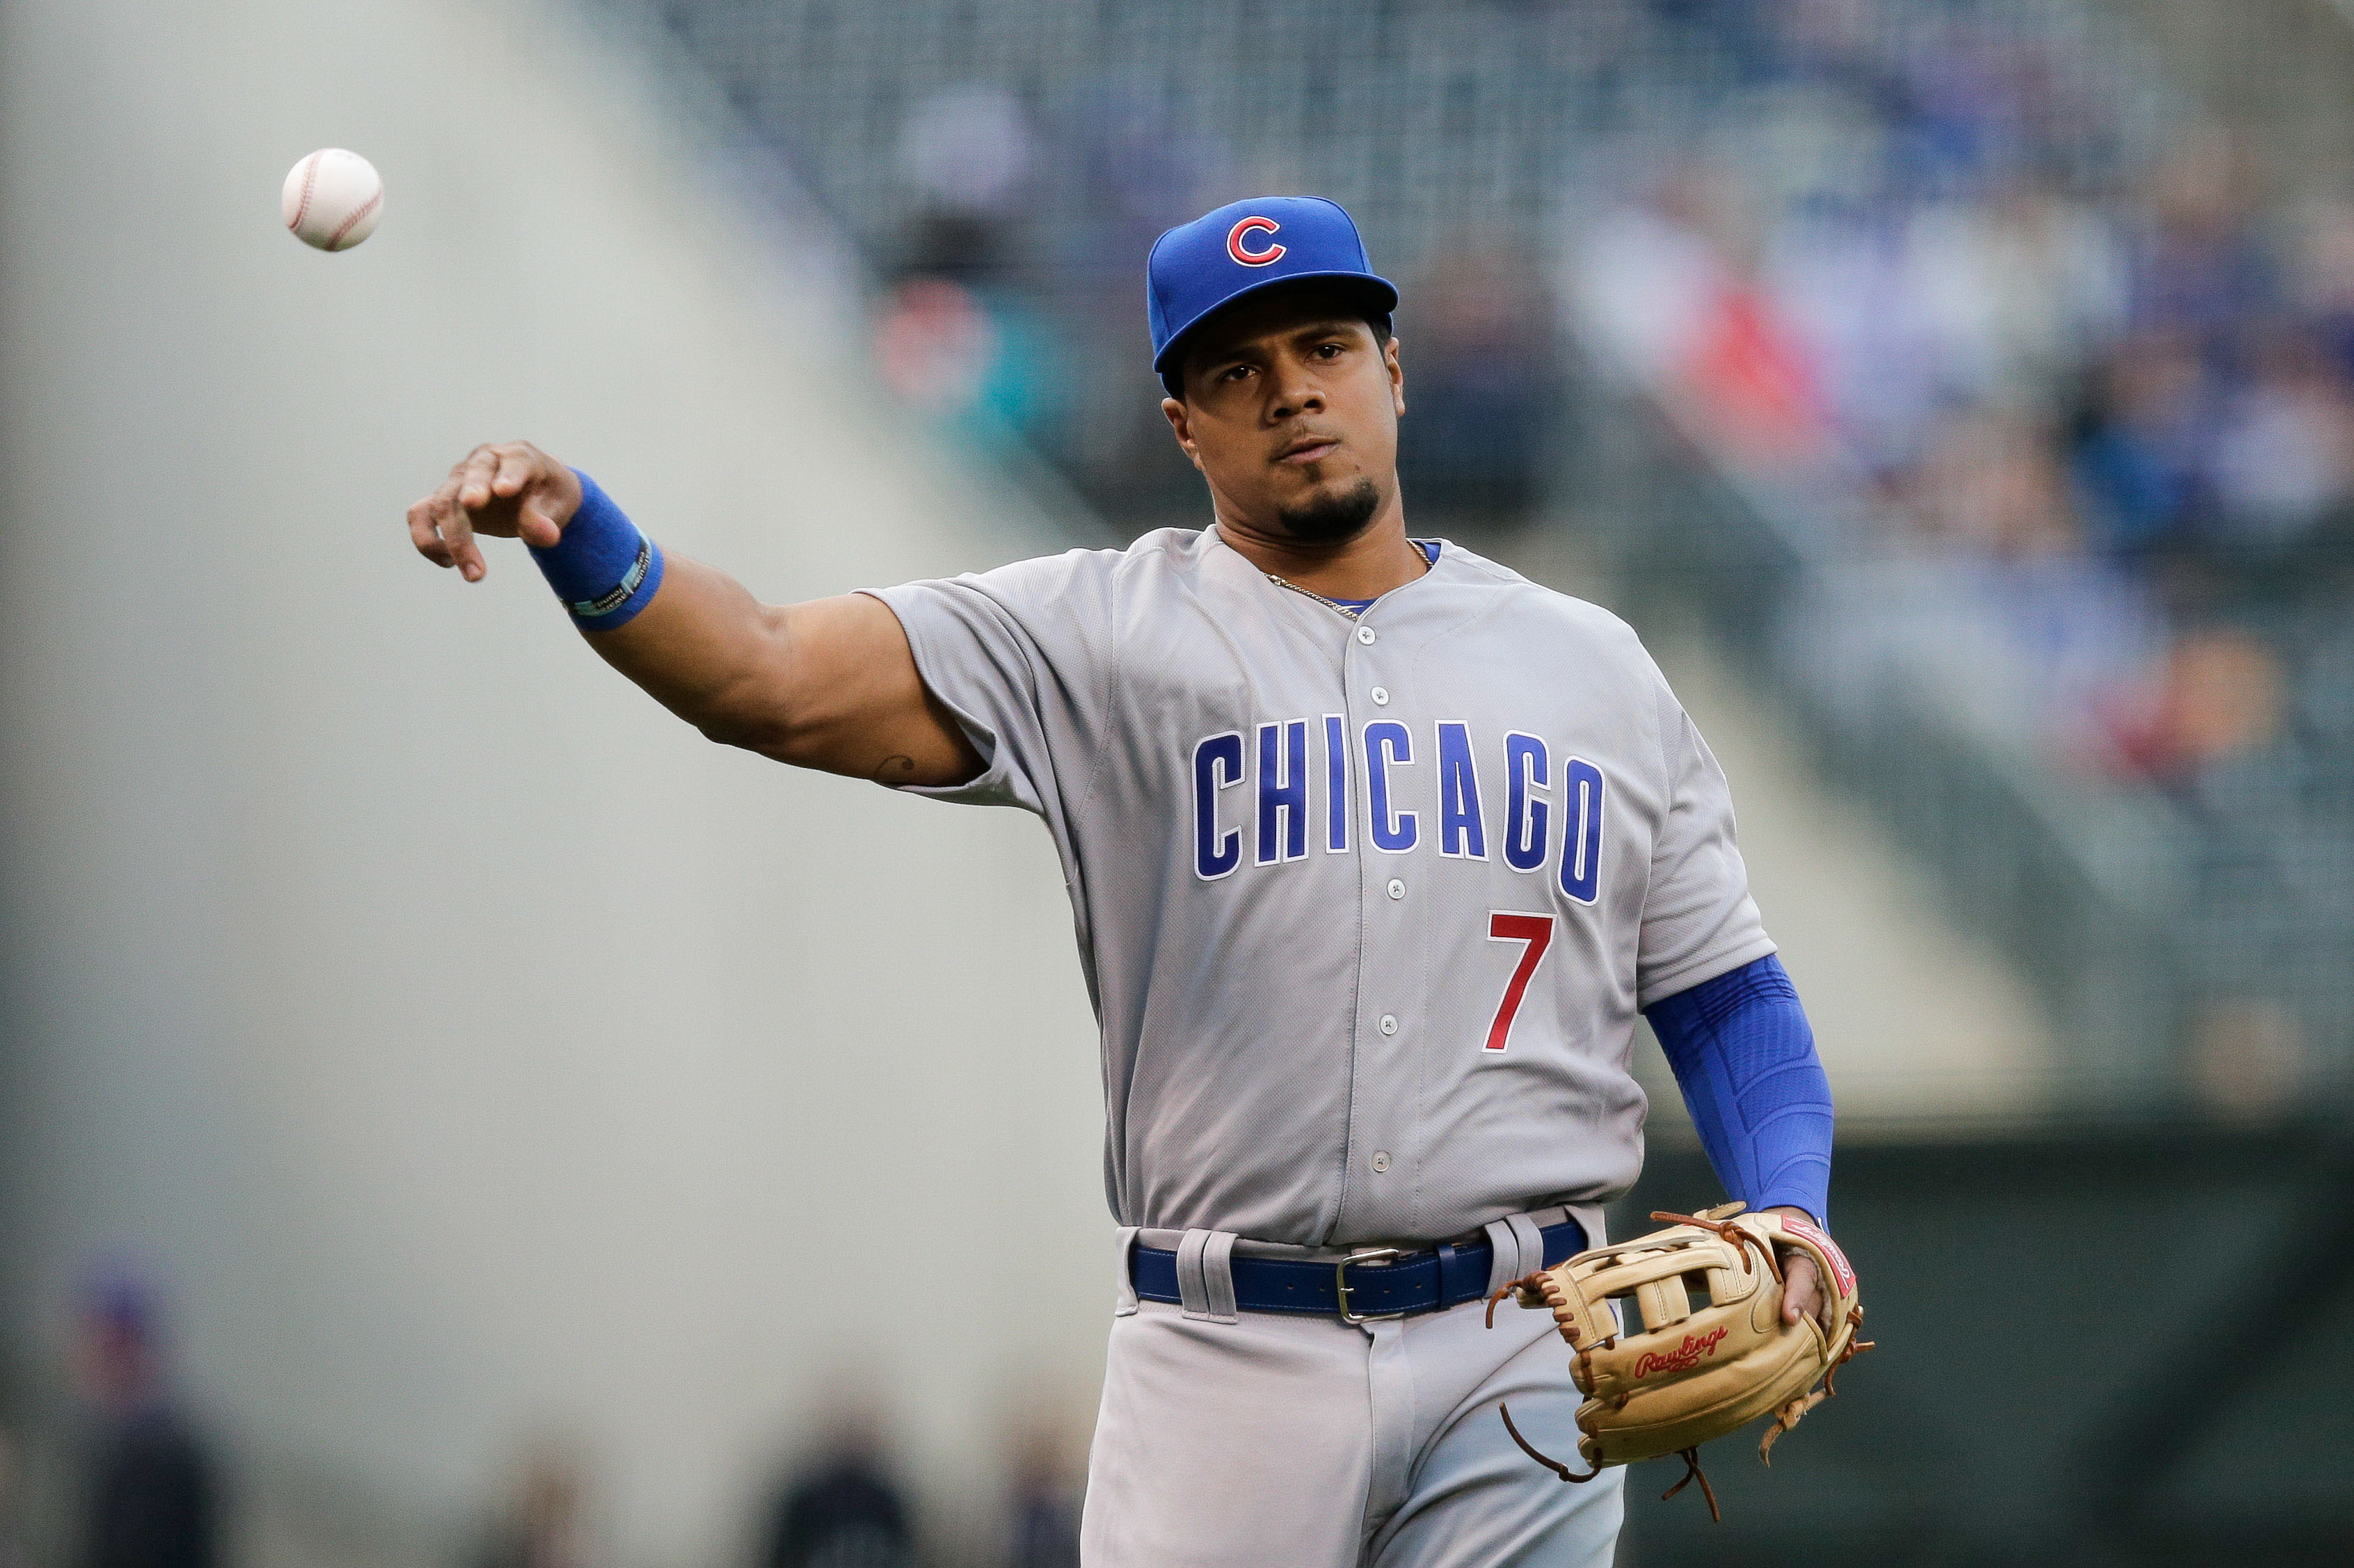 10118671-mlb-game-two-chicago-cubs-at-colorado-rockies